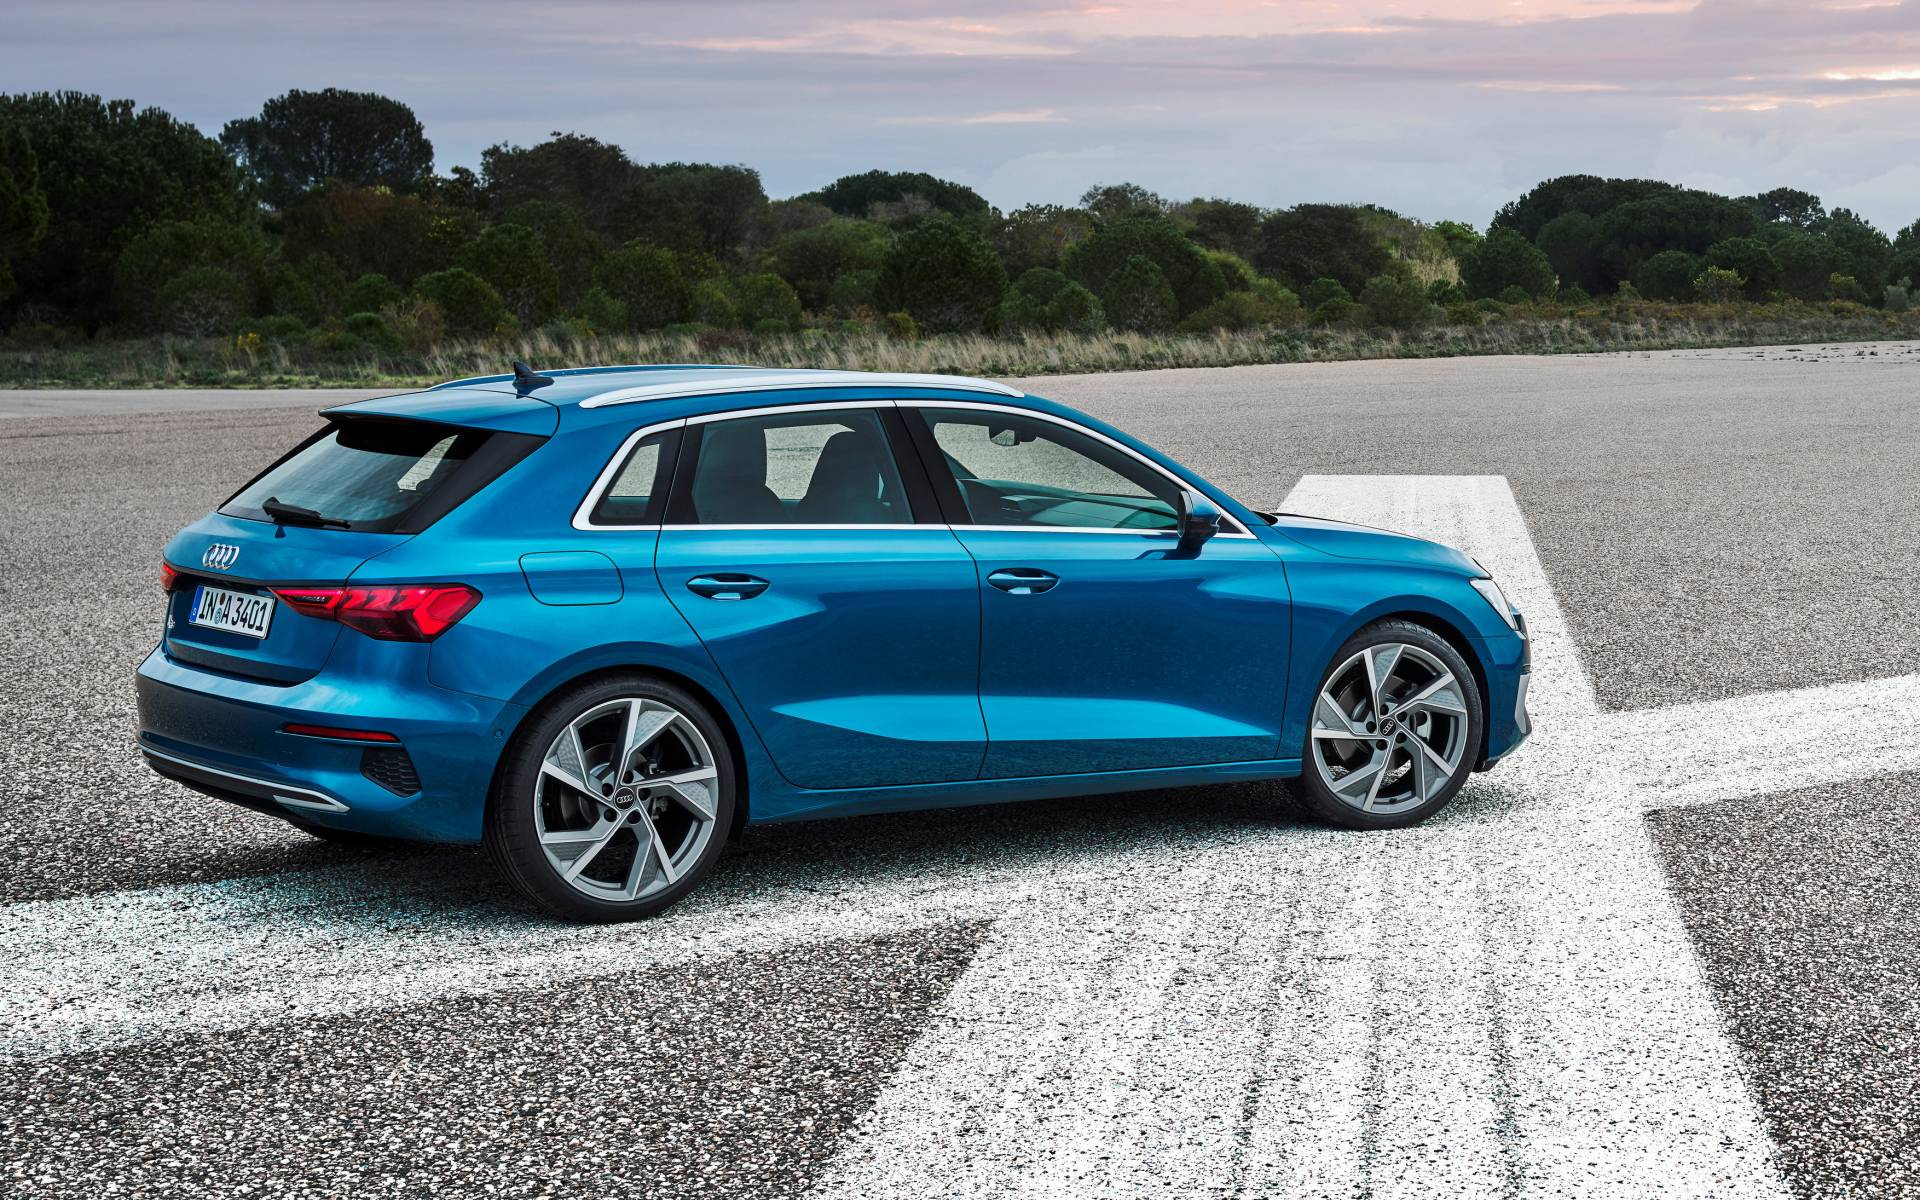 Redesigned Audi A3 Looks Extremely Sharp For 2022 The Car Guide